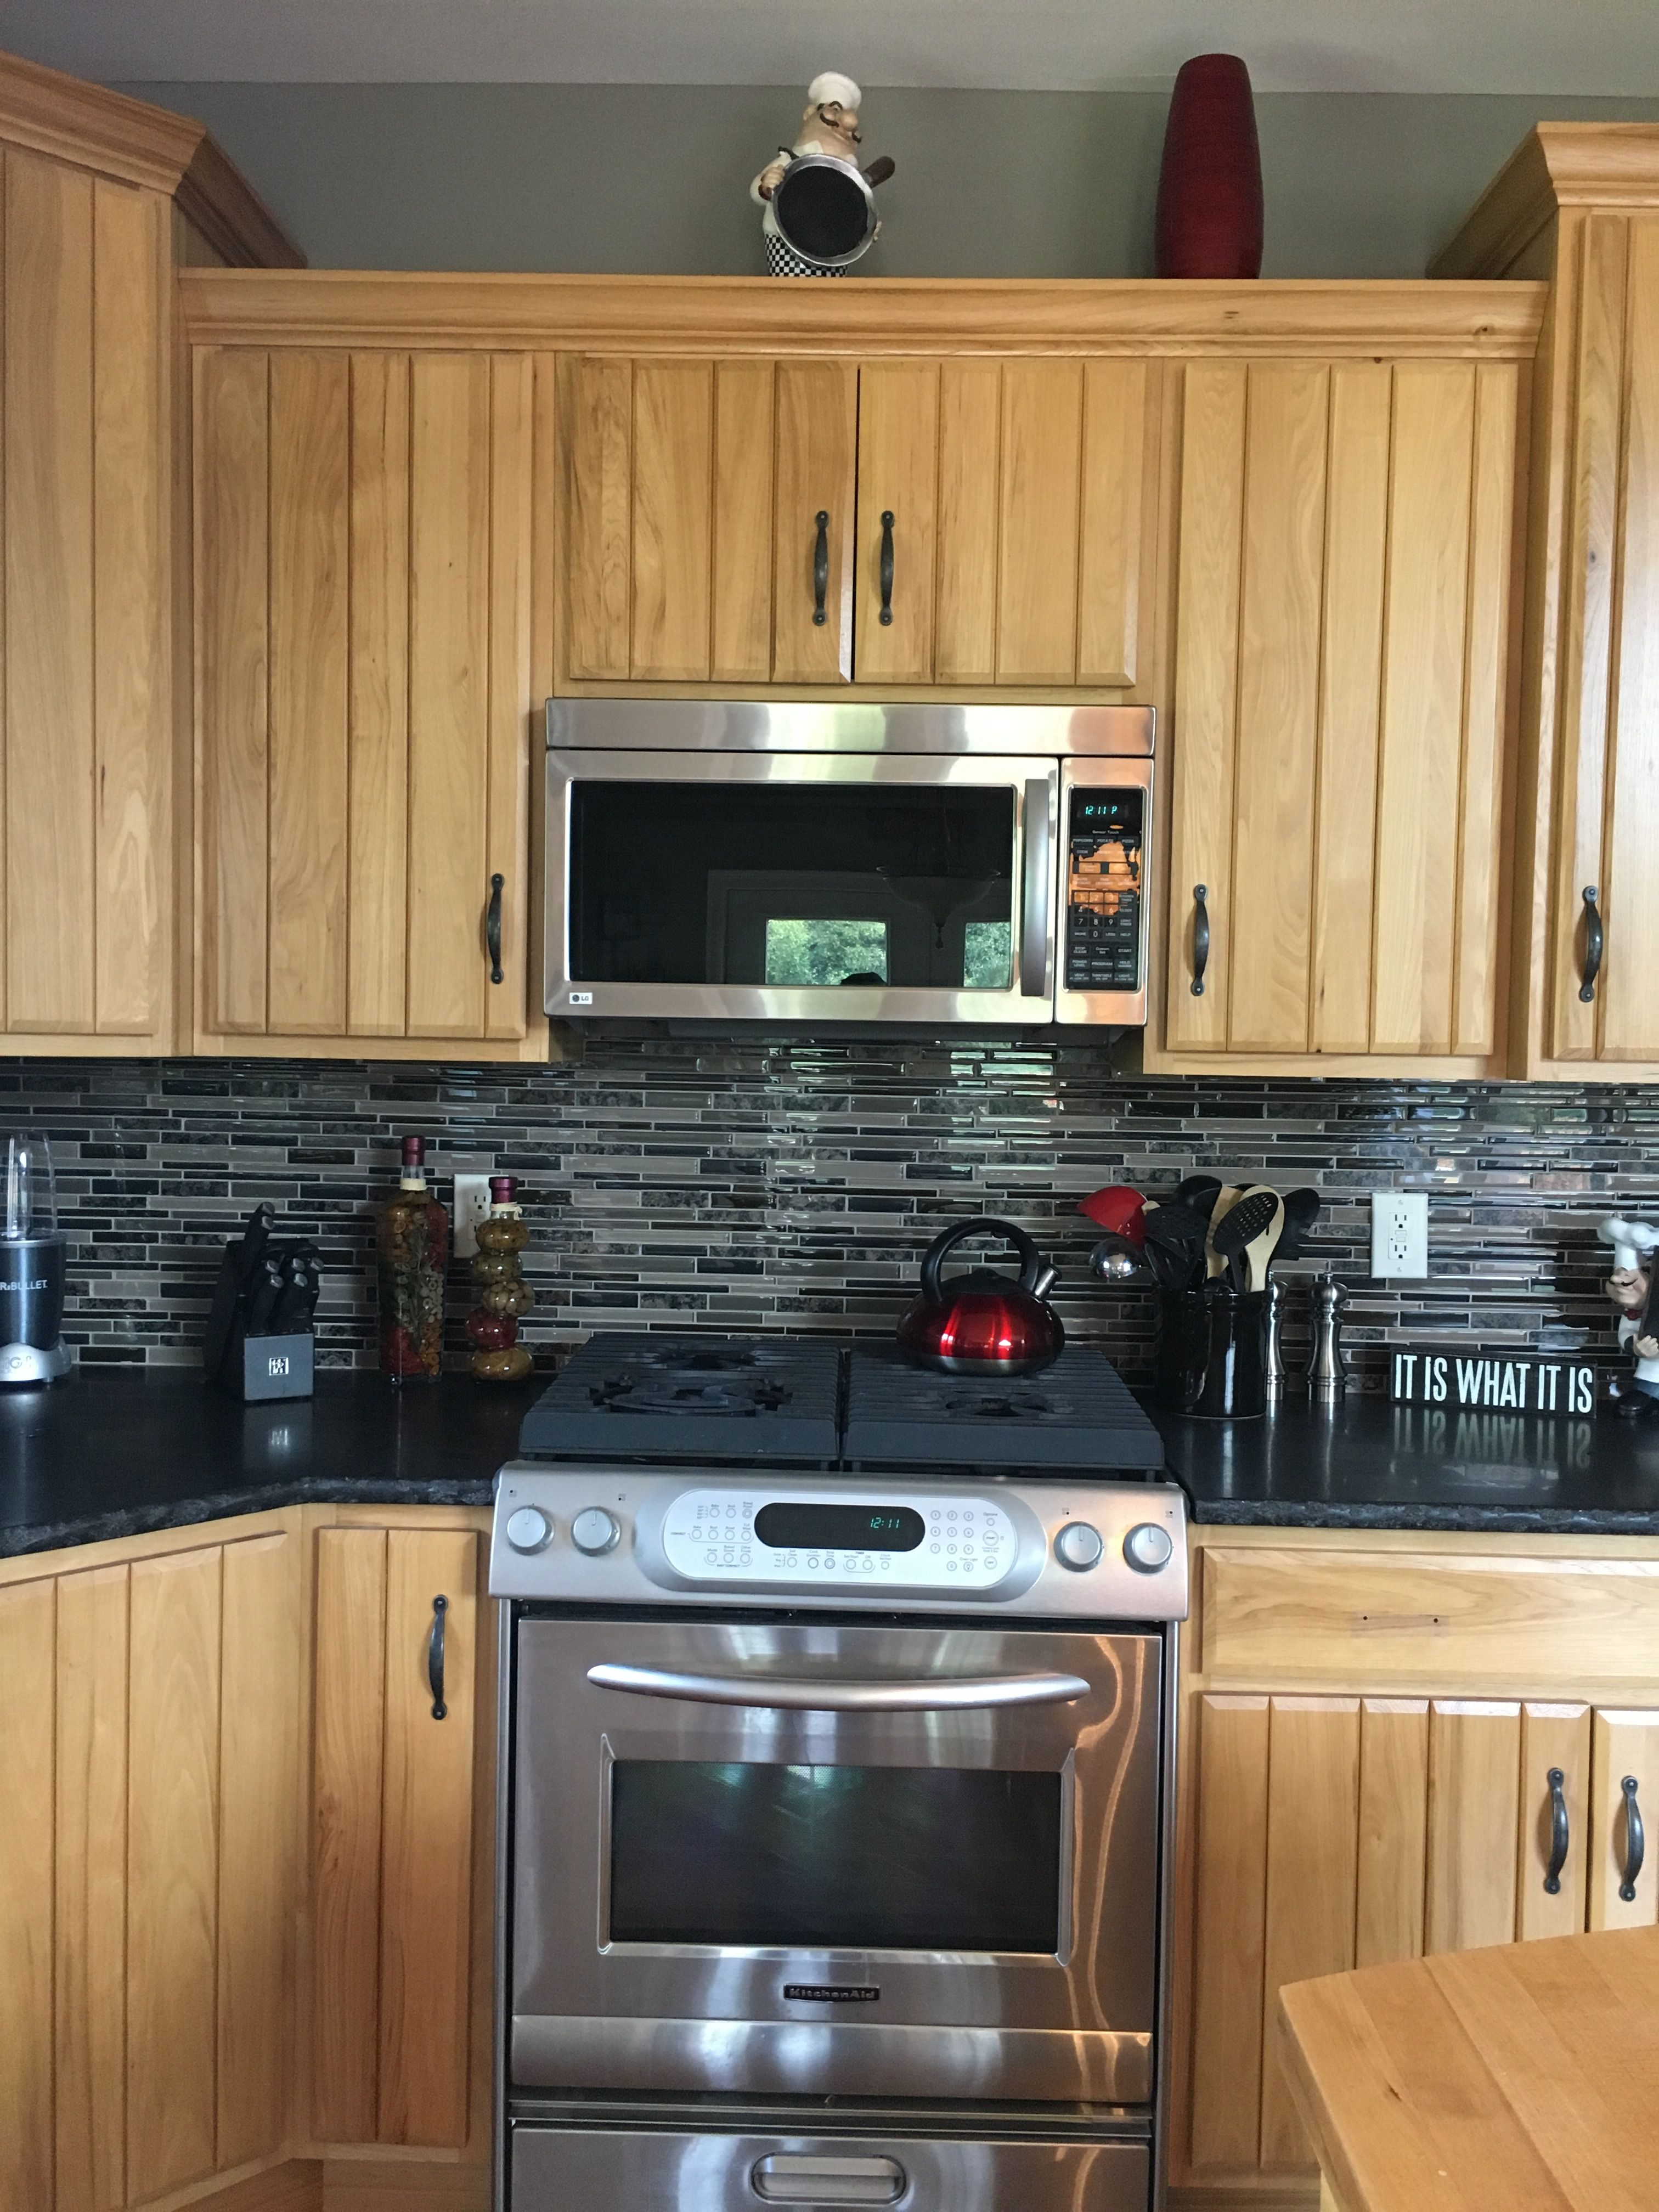 My new backsplash and paint in the kitchen. Loving it ...